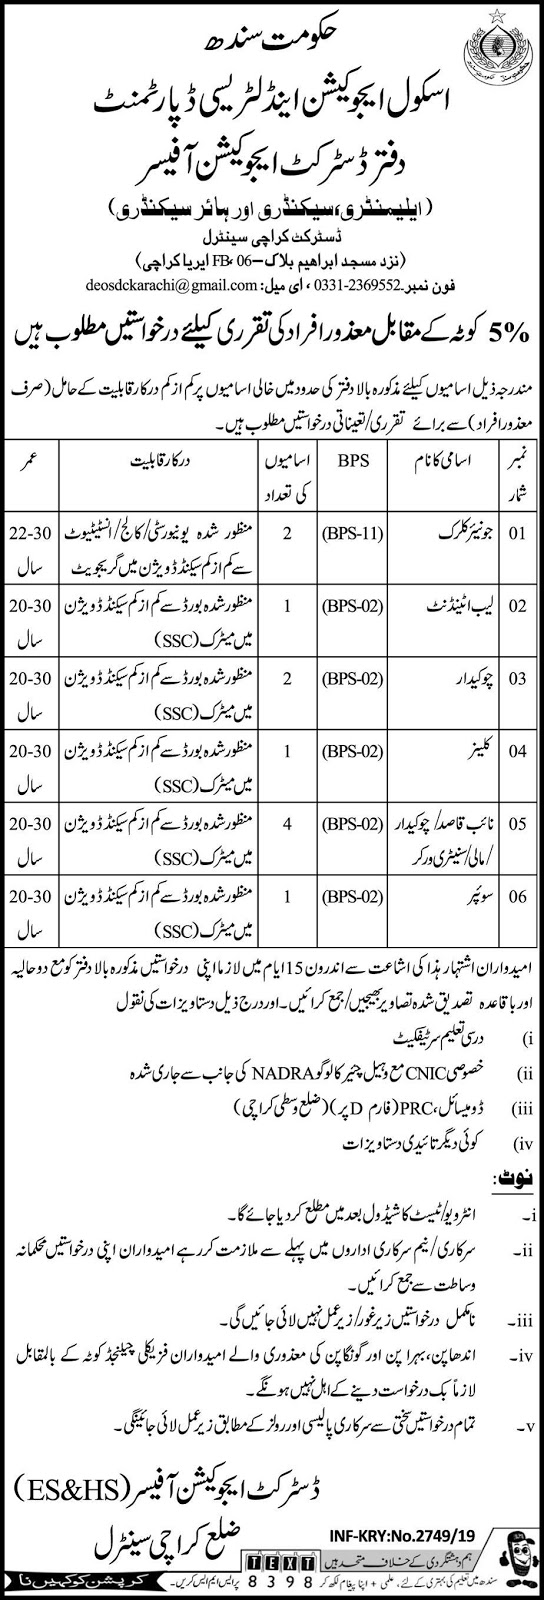 11 Jobs In Karachi School Education And Literacy Department Govt Of